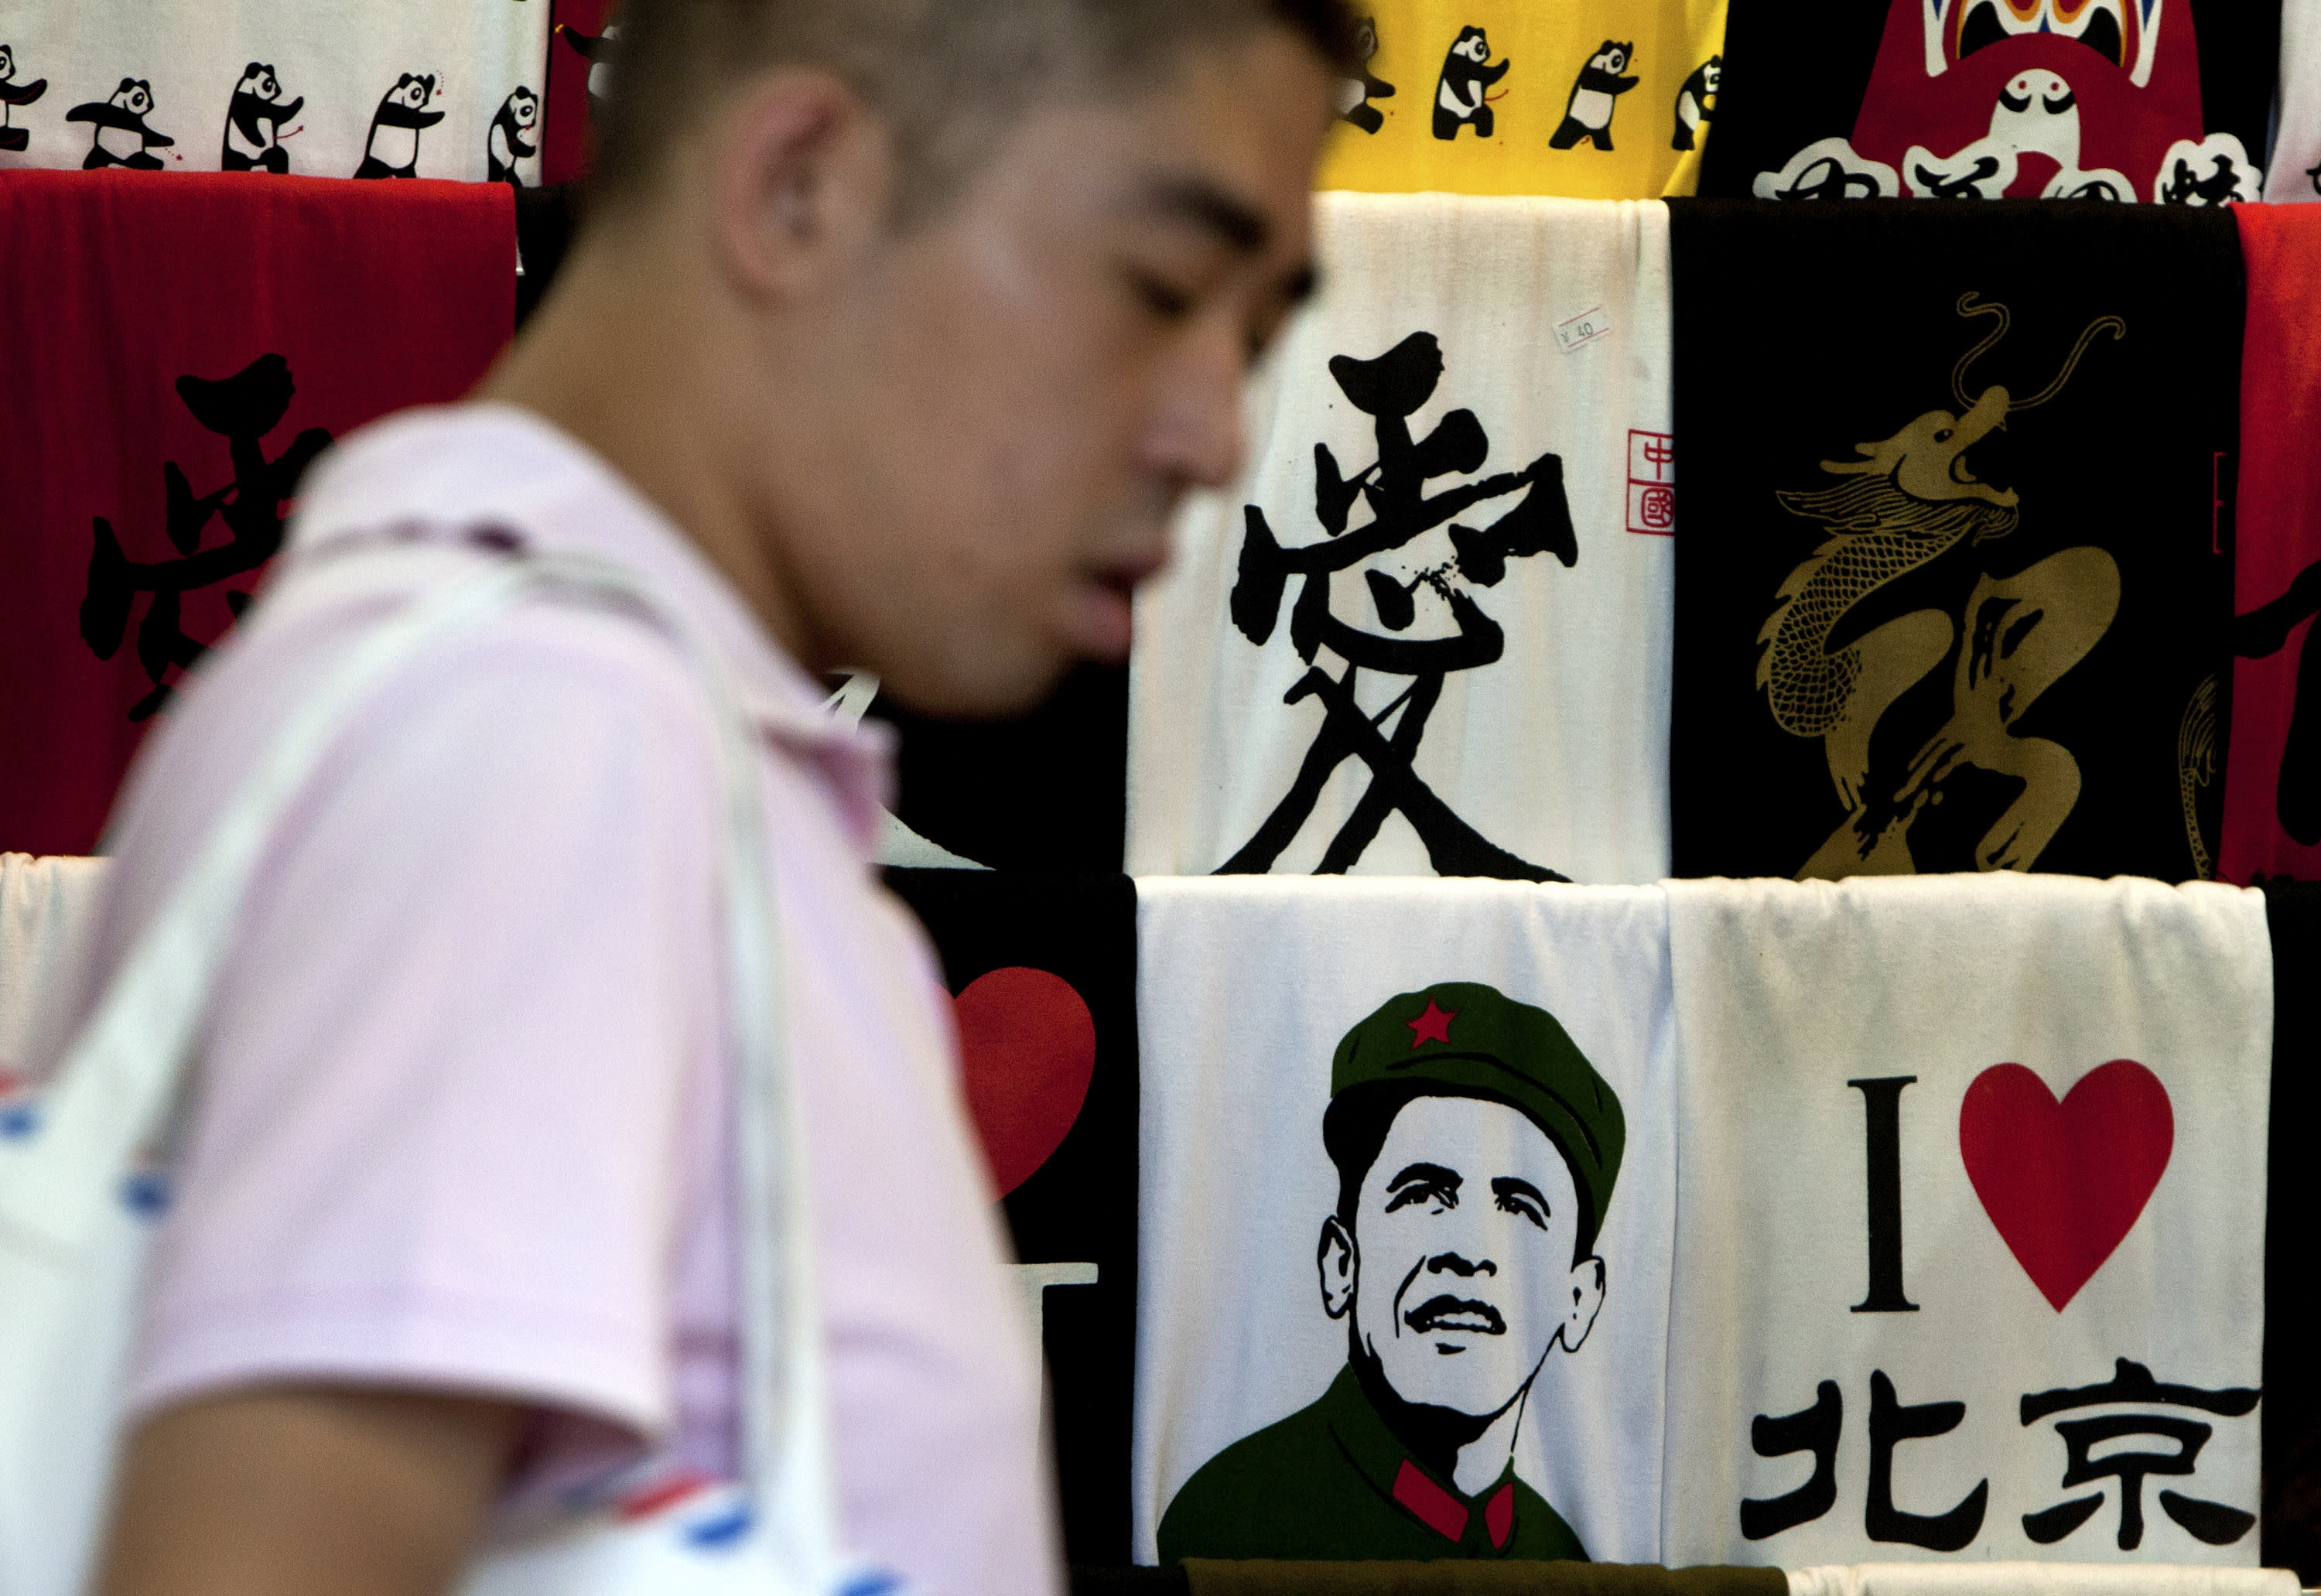 In this Sunday, July 31, 2011 photo, a Chinese man shops near a t-shirt printed with an image of U.S. President Barack Obama dressed in a Communist Cultural revolution era military uniform displayed for sale with others at a shop in Beijing, China. Obama and Chinese President Xi Jinping face weighty issues when they meet at a private estate in California next week, but their most important task may simply be establishing a strong rapport. (AP Photo/Andy Wong)